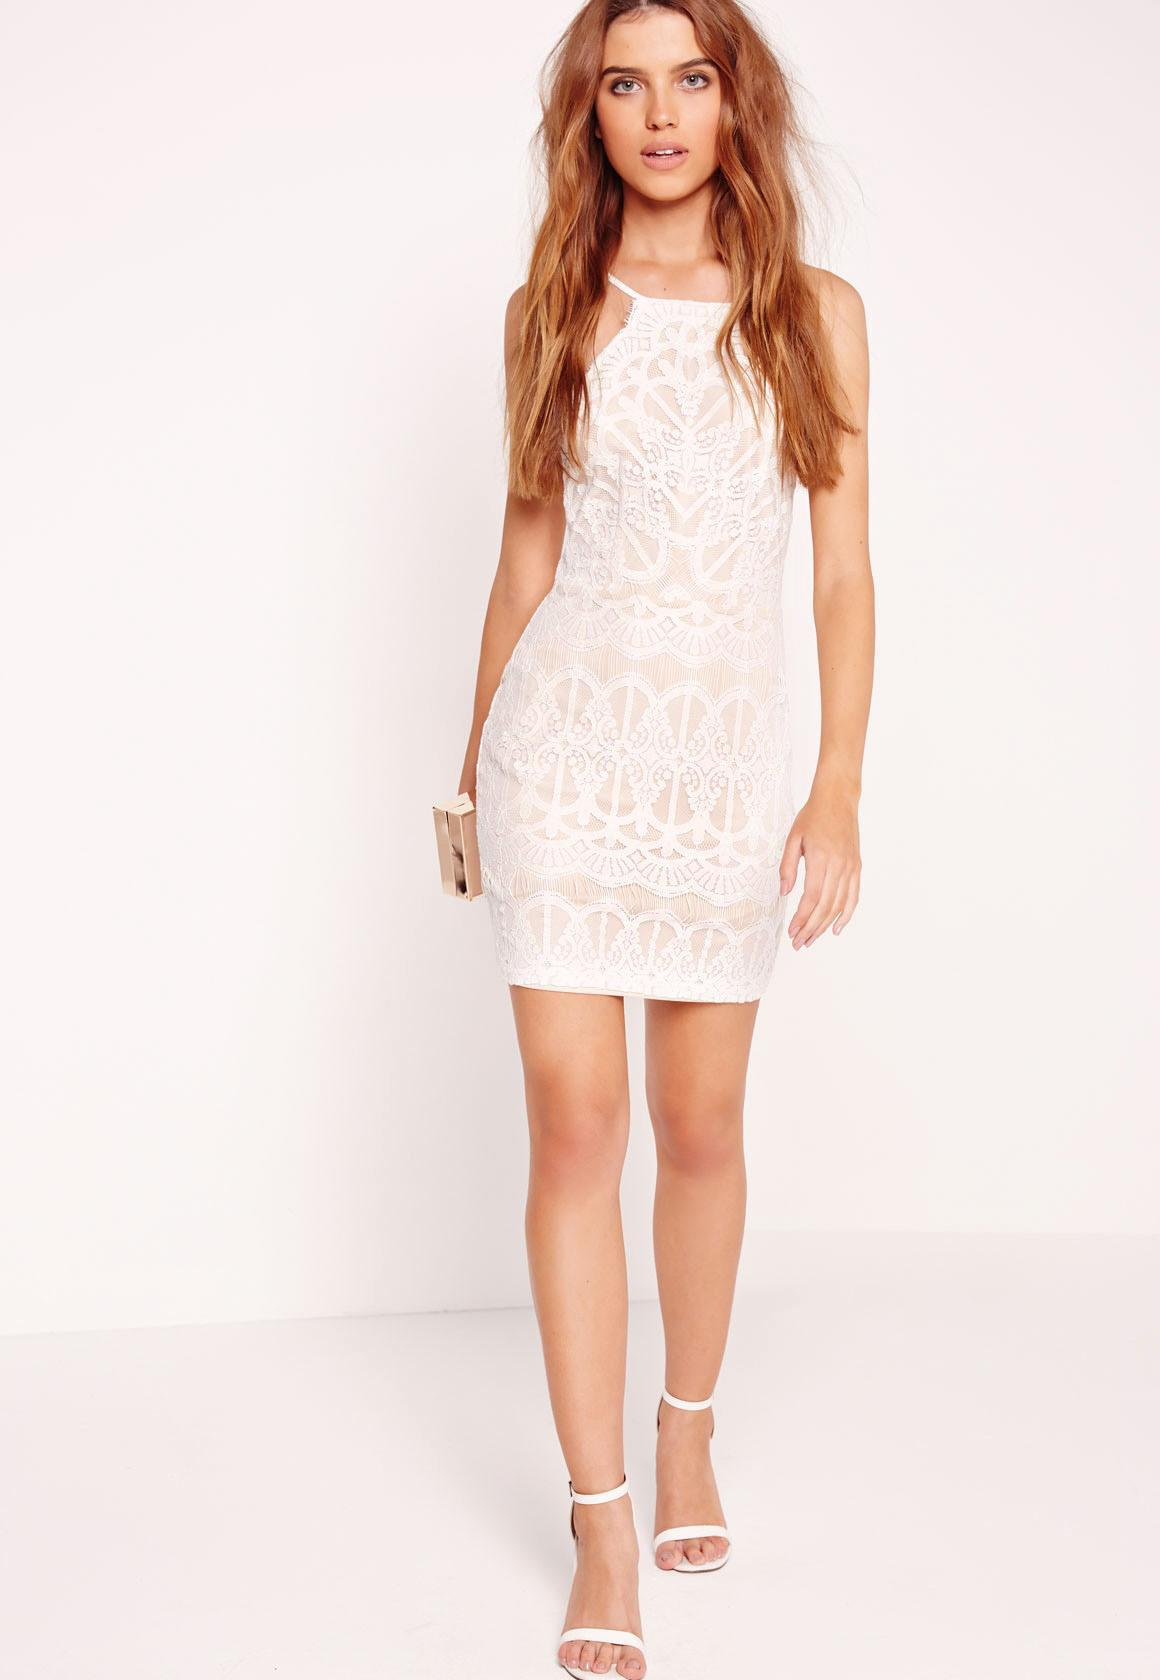 c8eb1ed0669 Missguided Lace Strappy Bodycon Dress Nude white in White - Lyst